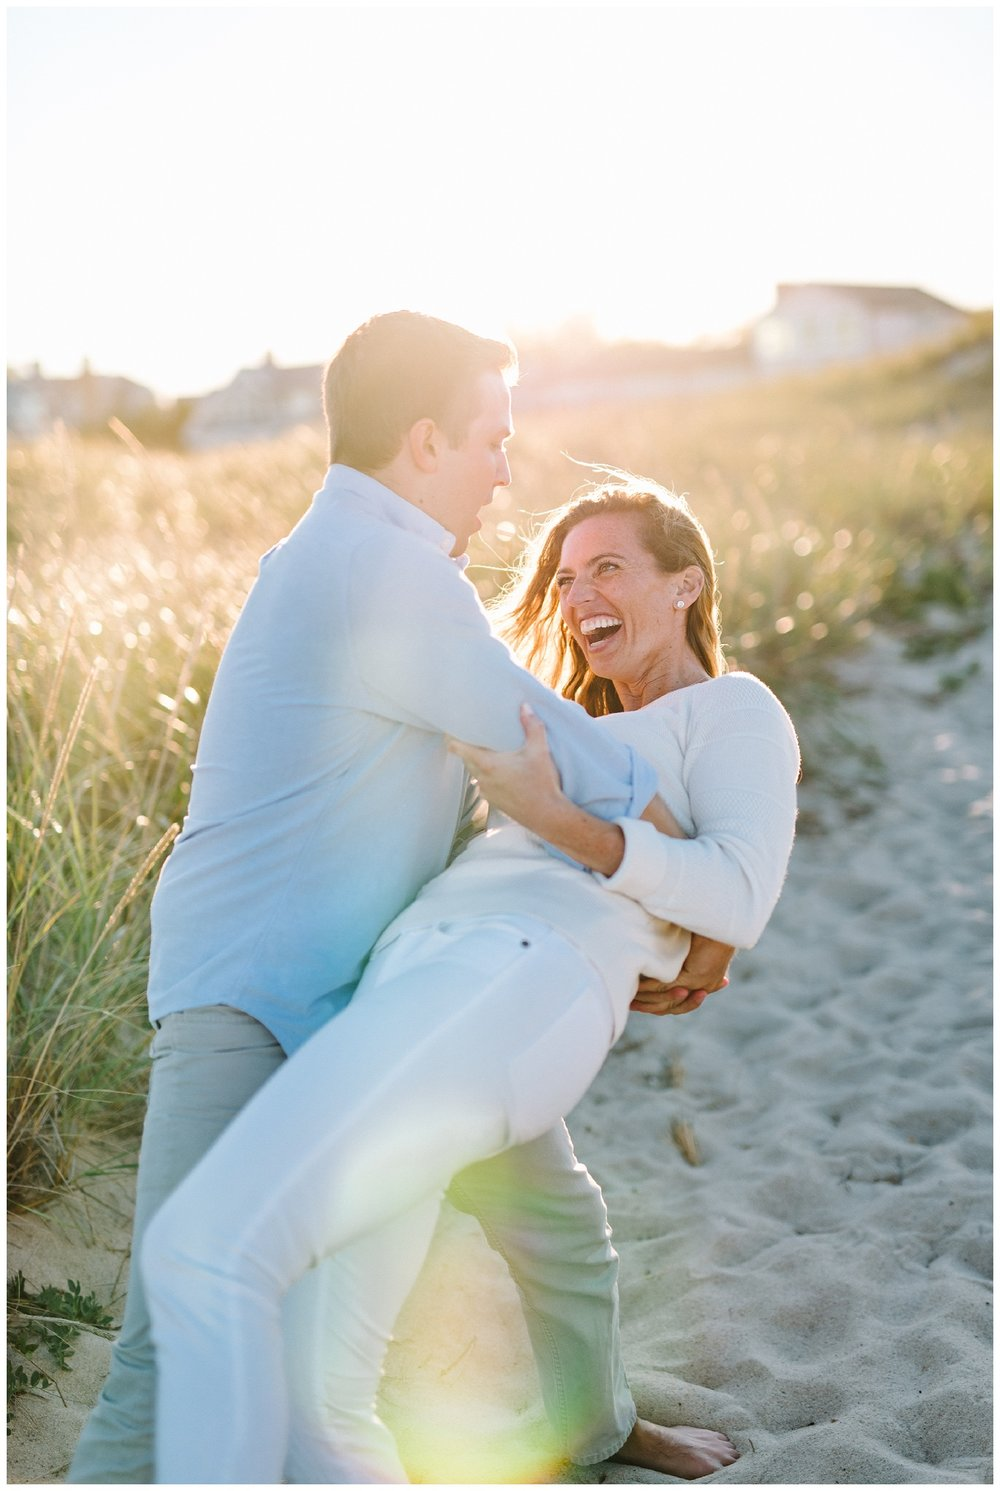 Chatham Engagement Session Cape Cod Wedding Photographer-20.jpg